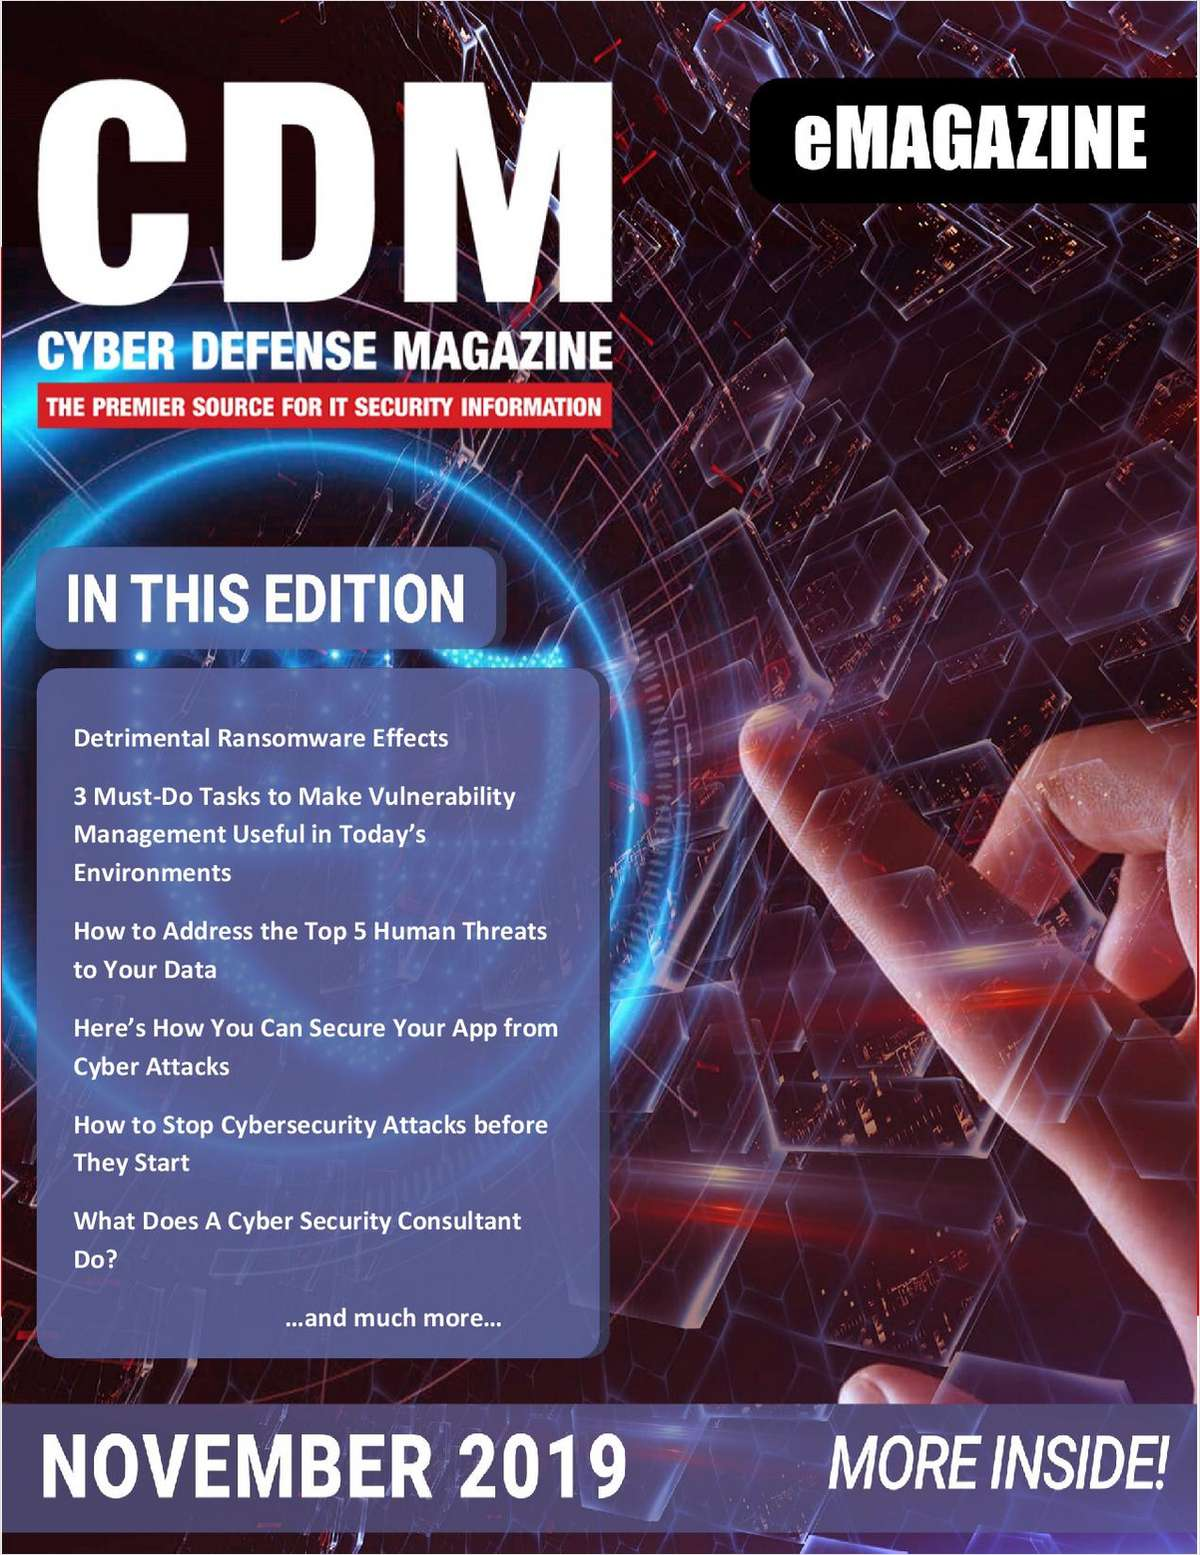 Cyber Defense Magazine November 2019